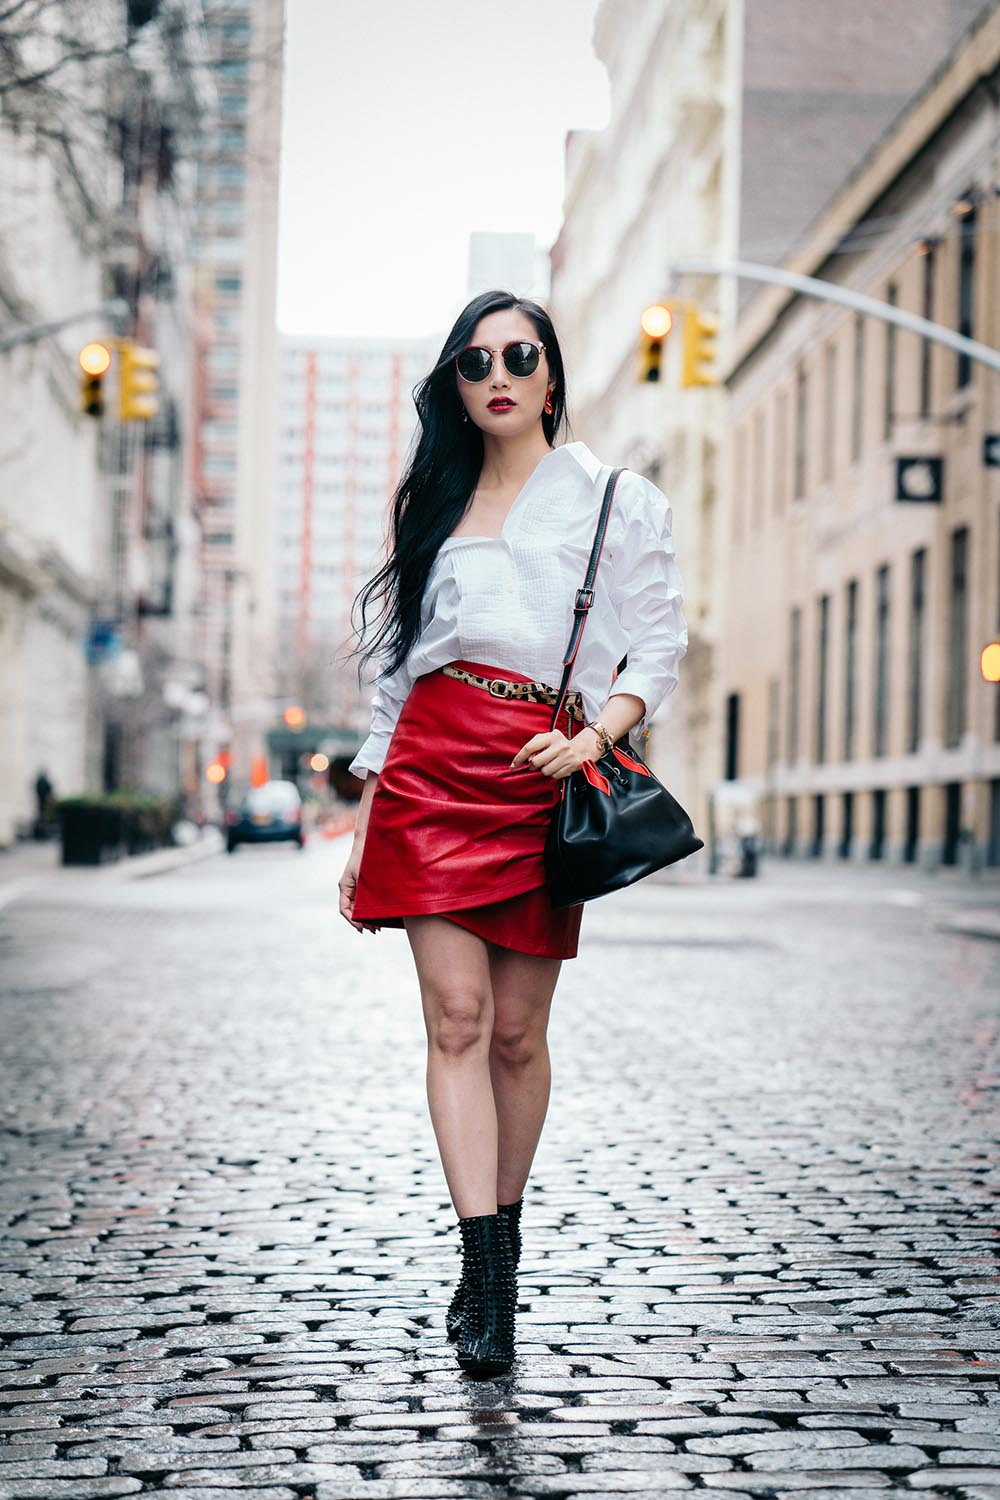 Off The Shoulder Shirts for Spring   Of Leather and Lace - A Fashion Blog by Tina Lee